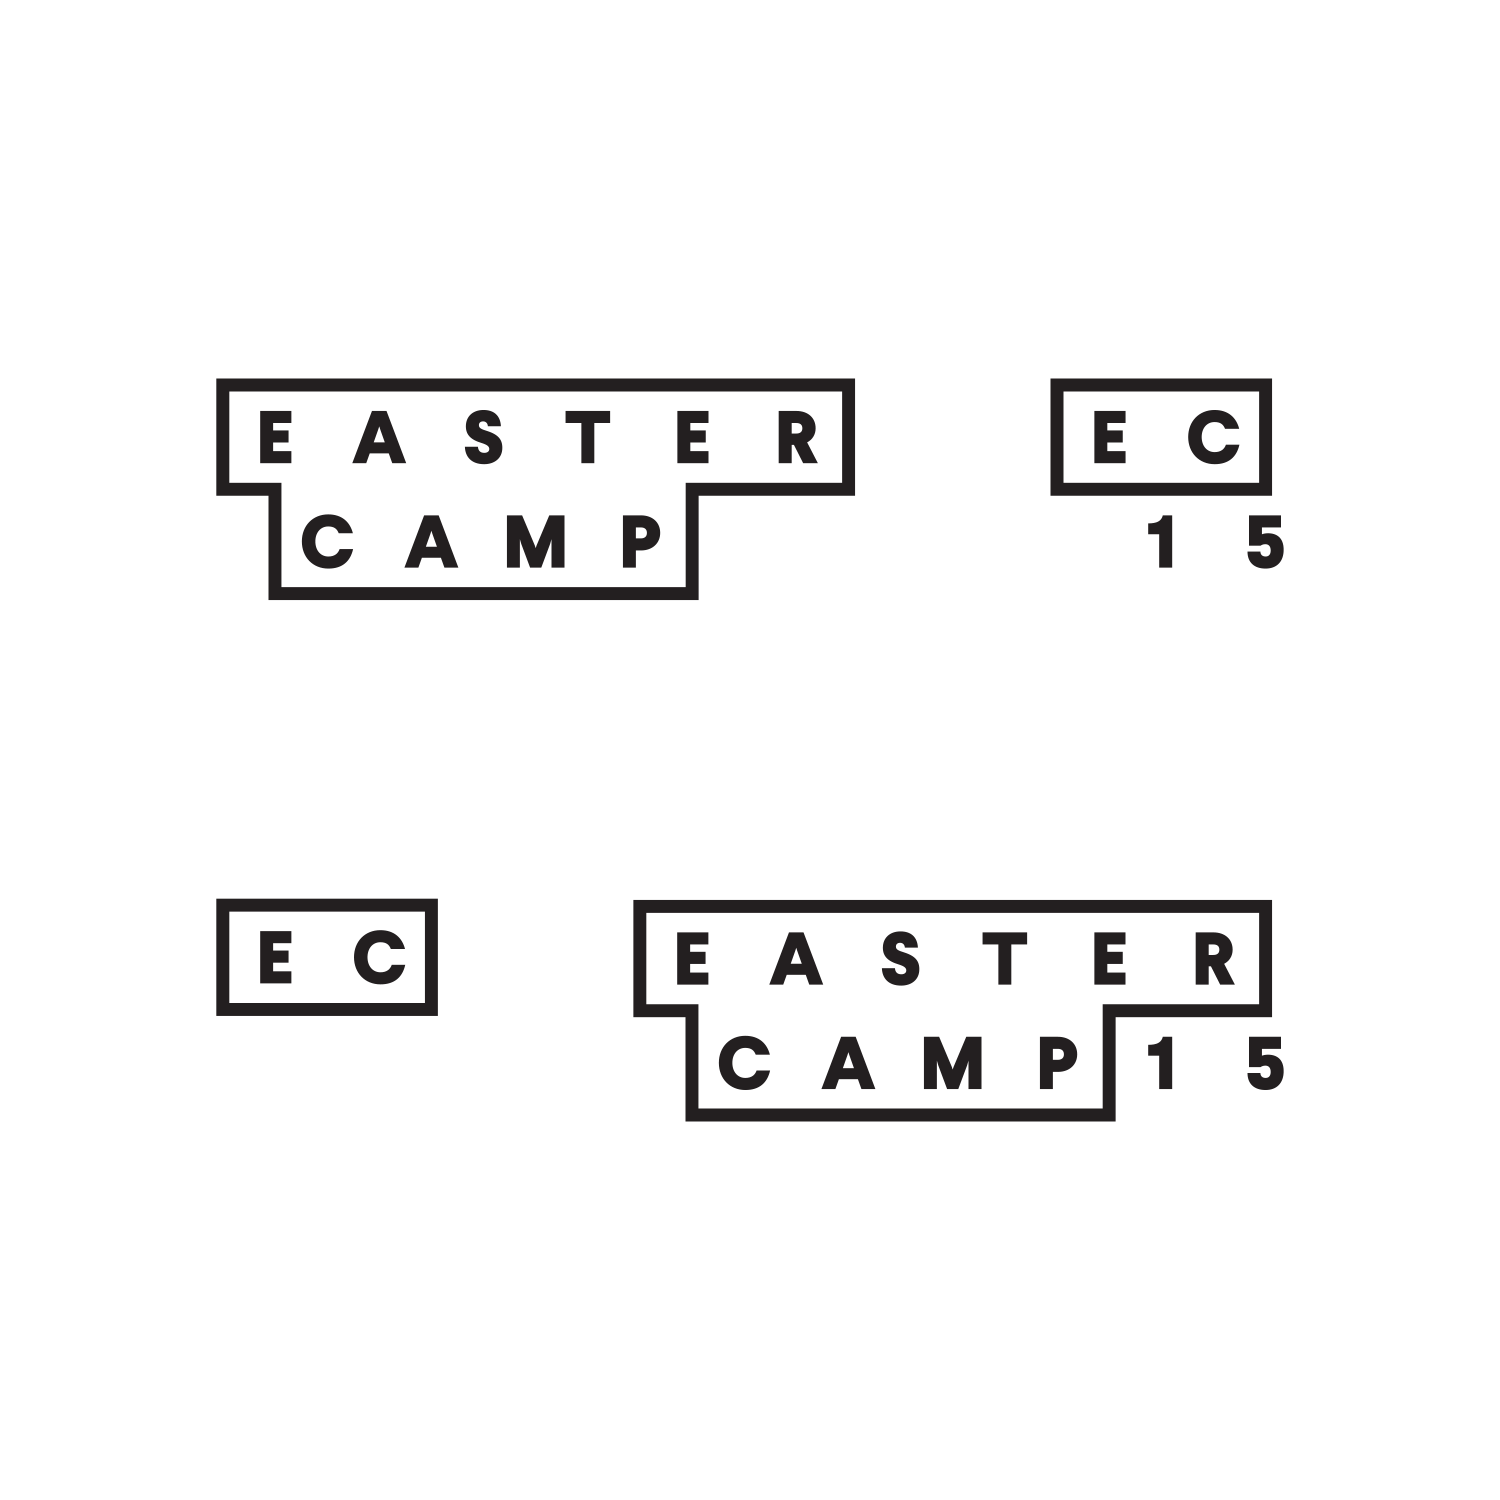 Identity lockups for Eastercamp designed by ThompsonCo.